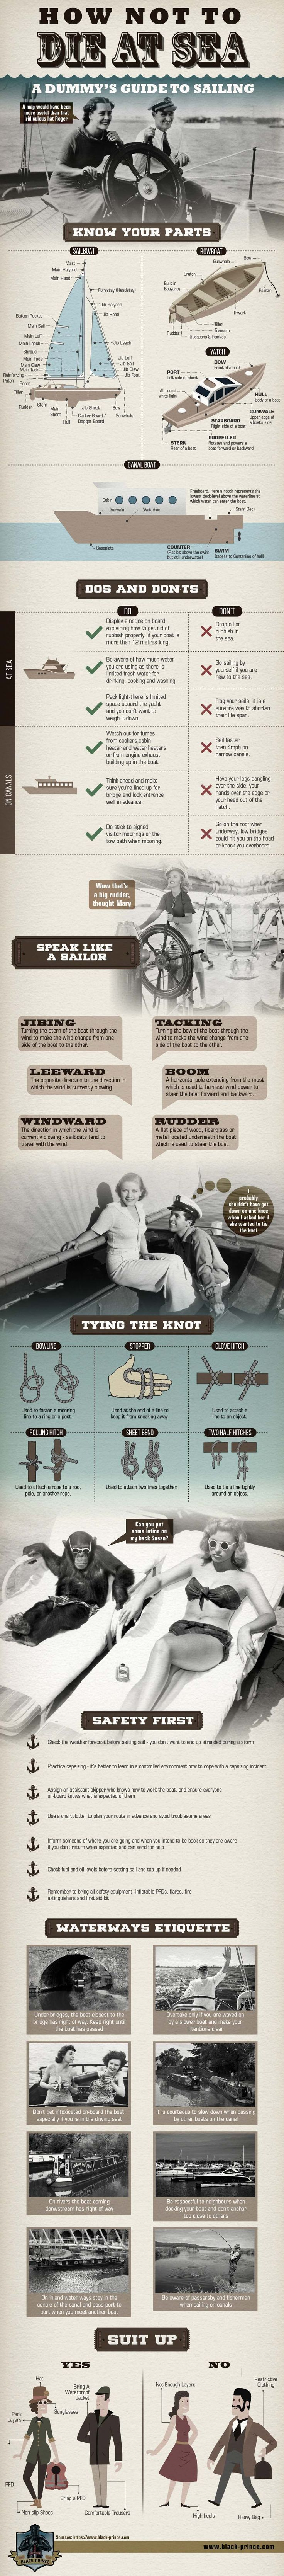 handy – and a little tongue-in-cheek – guide to 'Sailing for Dummy's'.    (No insults to dummy's or mannequins of any type intended).  #LakeMartinBoating #FRLM #Sailing